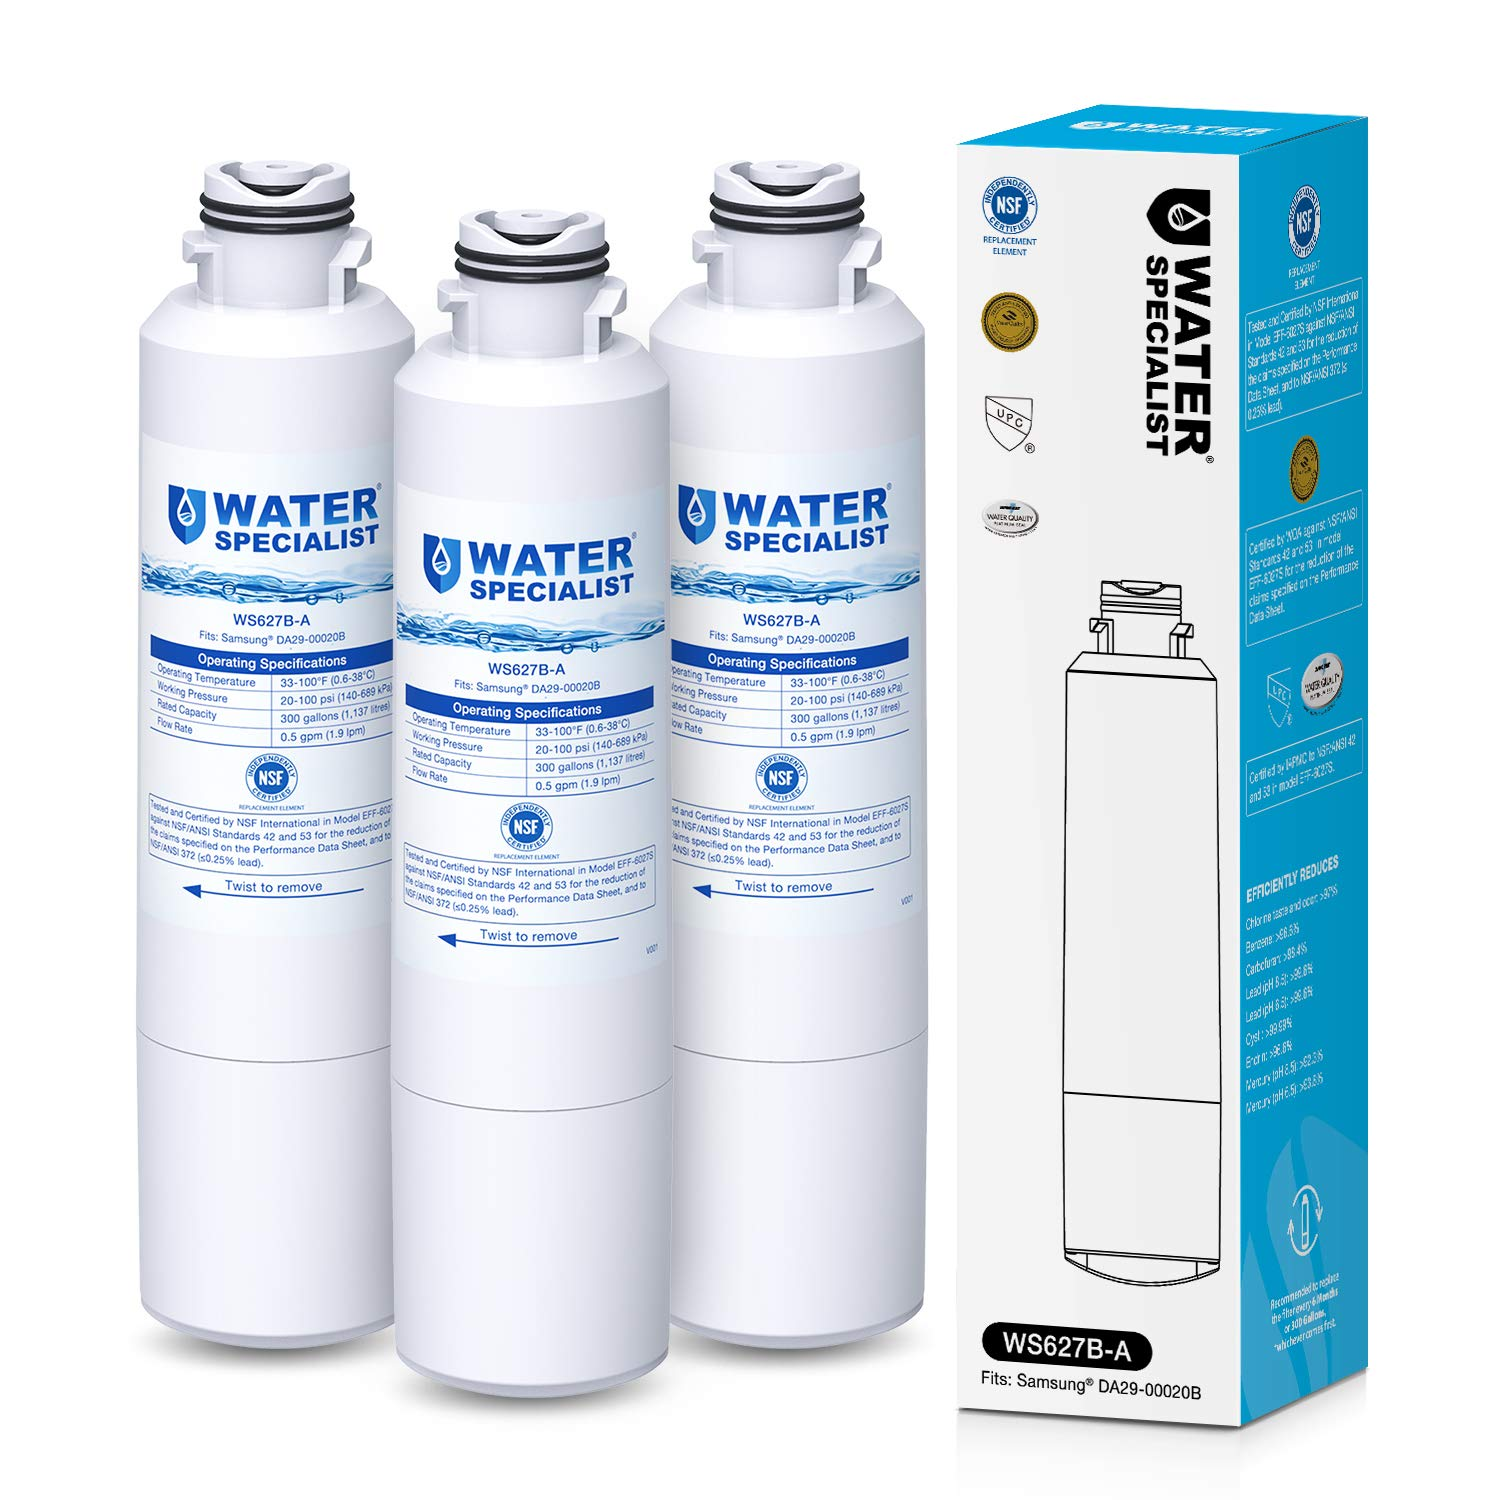 Waterspecialist NSF 53&42 Certified DA29-00020B Refrigerator Water Filter, Replacement for Samsung HAF-CIN, HAF-CIN/EXP, DA29-00020A/B, DA97-08006A, DA2900020B, RF28HMEDBSR, RF4287HARS (Pack of 3) by Waterspecialist